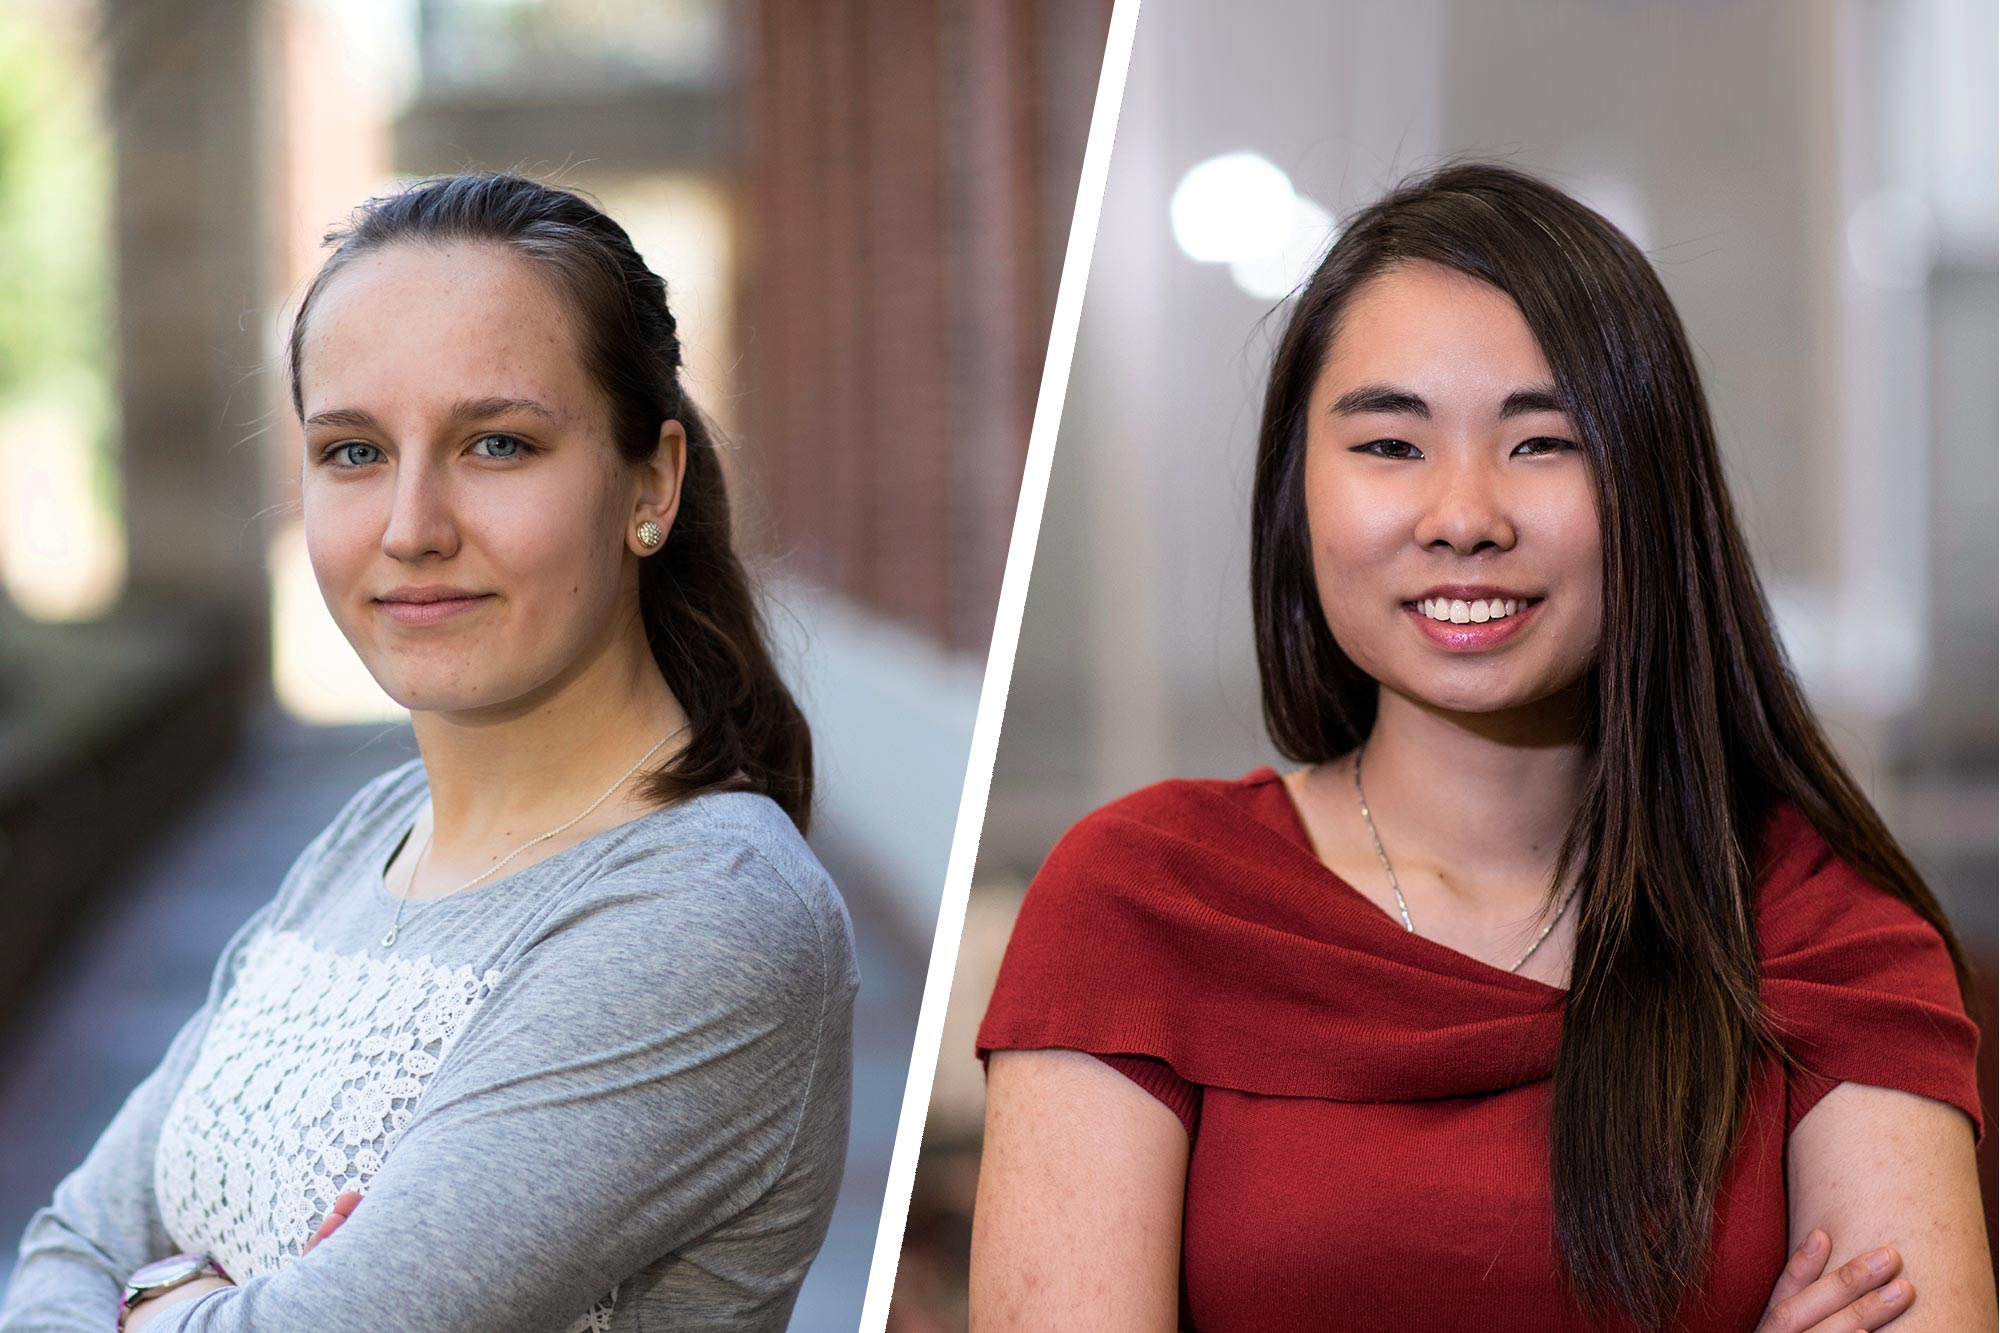 Beckman Scholars Caroline Kerr is entering the Medical Scientist Training Program program at the University of Wisconsin-Madison and Yi-Ting Liu, plans to pursue a Ph.D. in neuroscience.